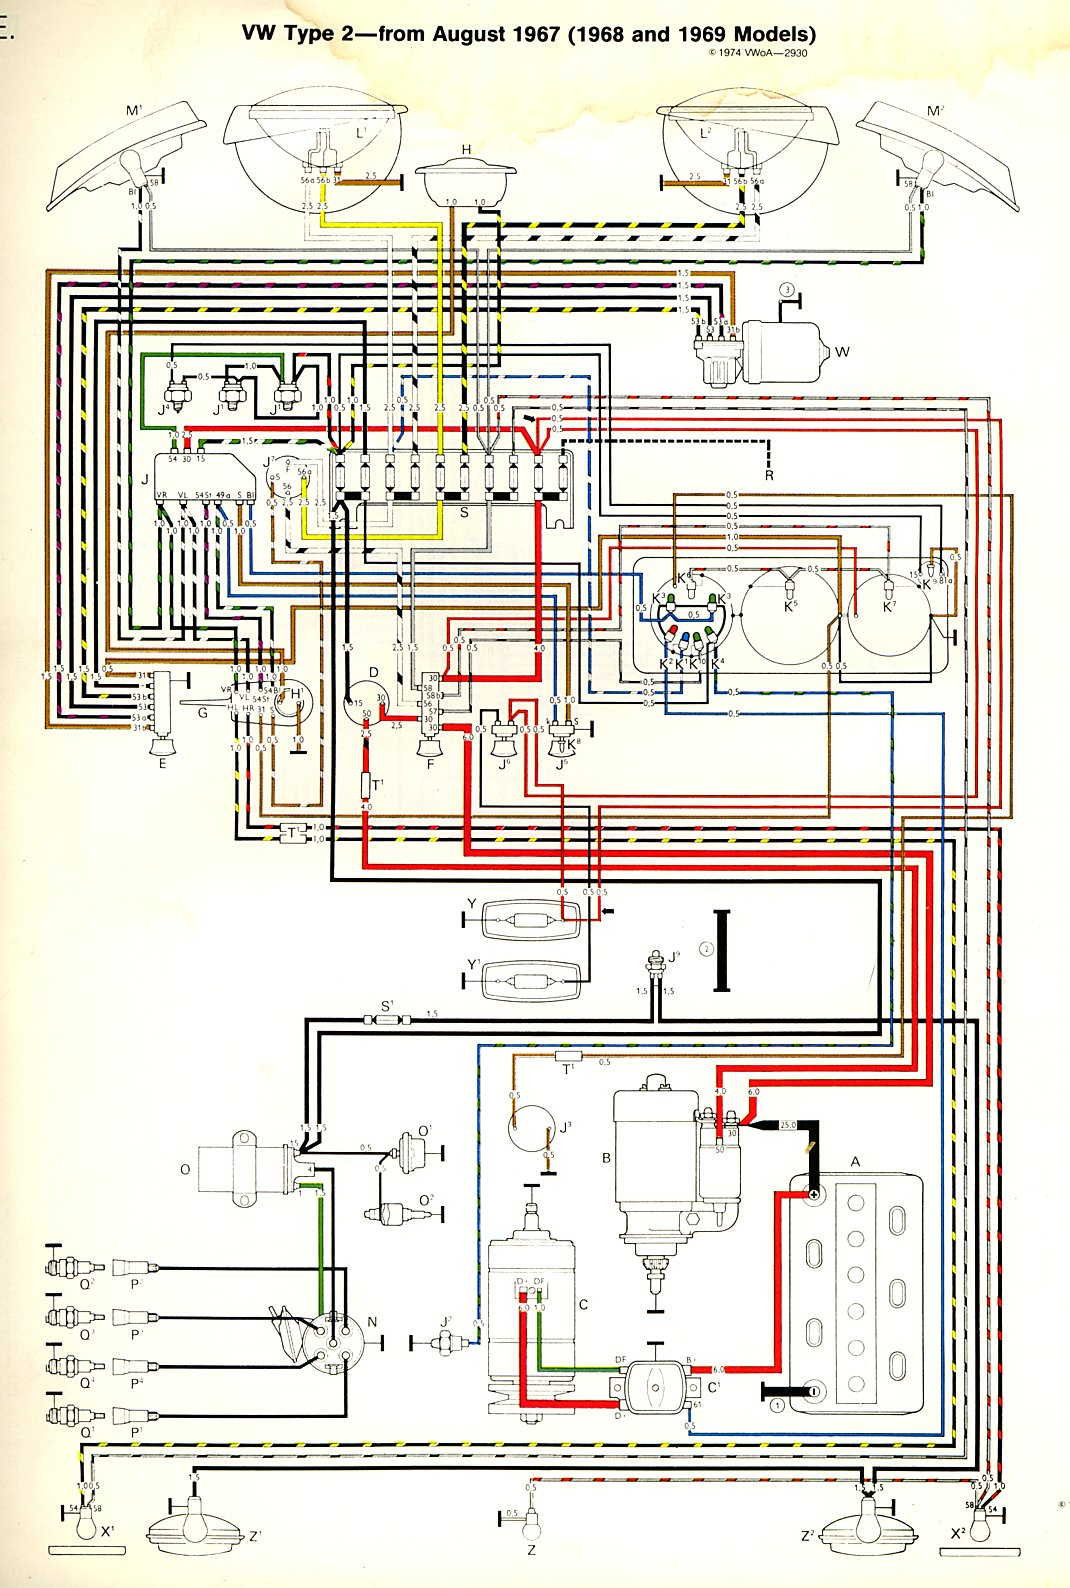 baybus_6869a 1968 69 bus wiring diagram thegoldenbug com 1973 vw beetle wiring diagram at cos-gaming.co